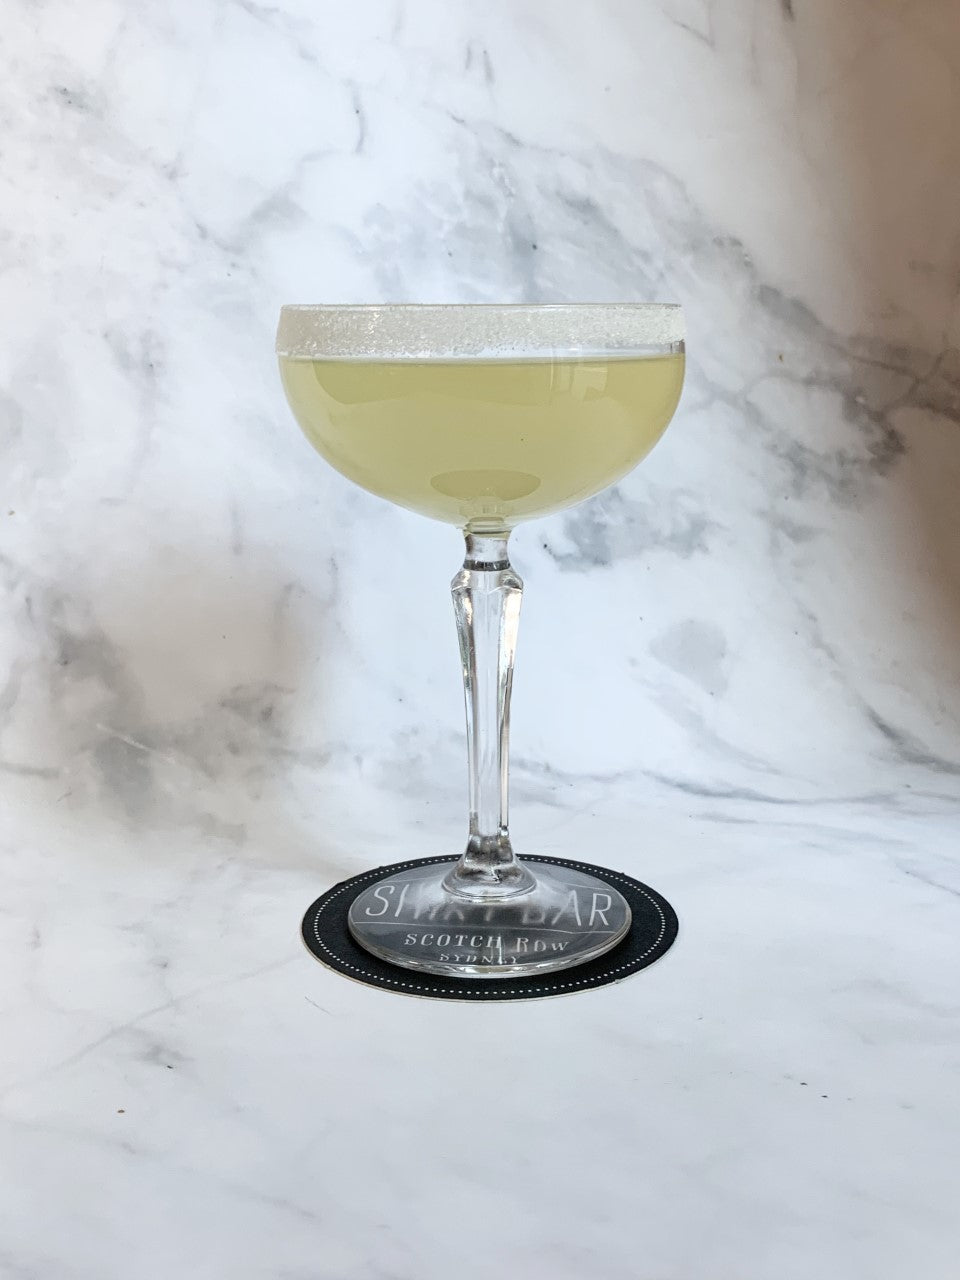 Lemondrop (2 serves)